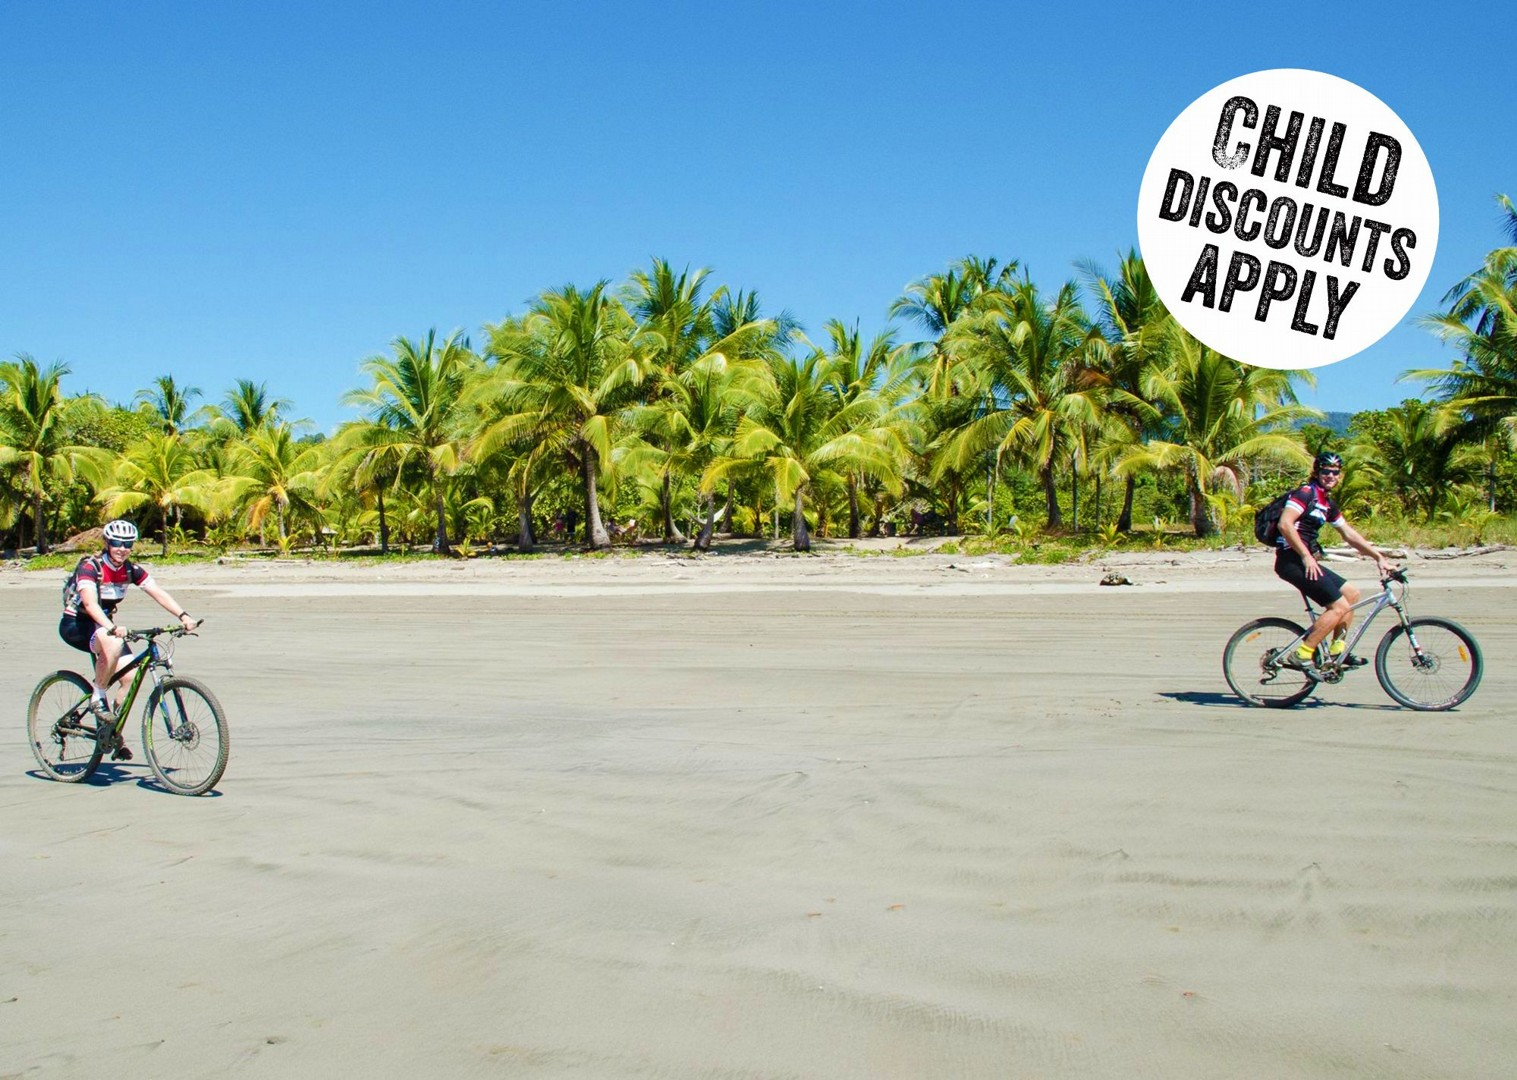 guided-holiday-costa-rica-central-america-family-cycling-holiday.jpg - Costa Rica - Volcanoes and Valleys - Guided Family Cycling Holiday - Family Cycling